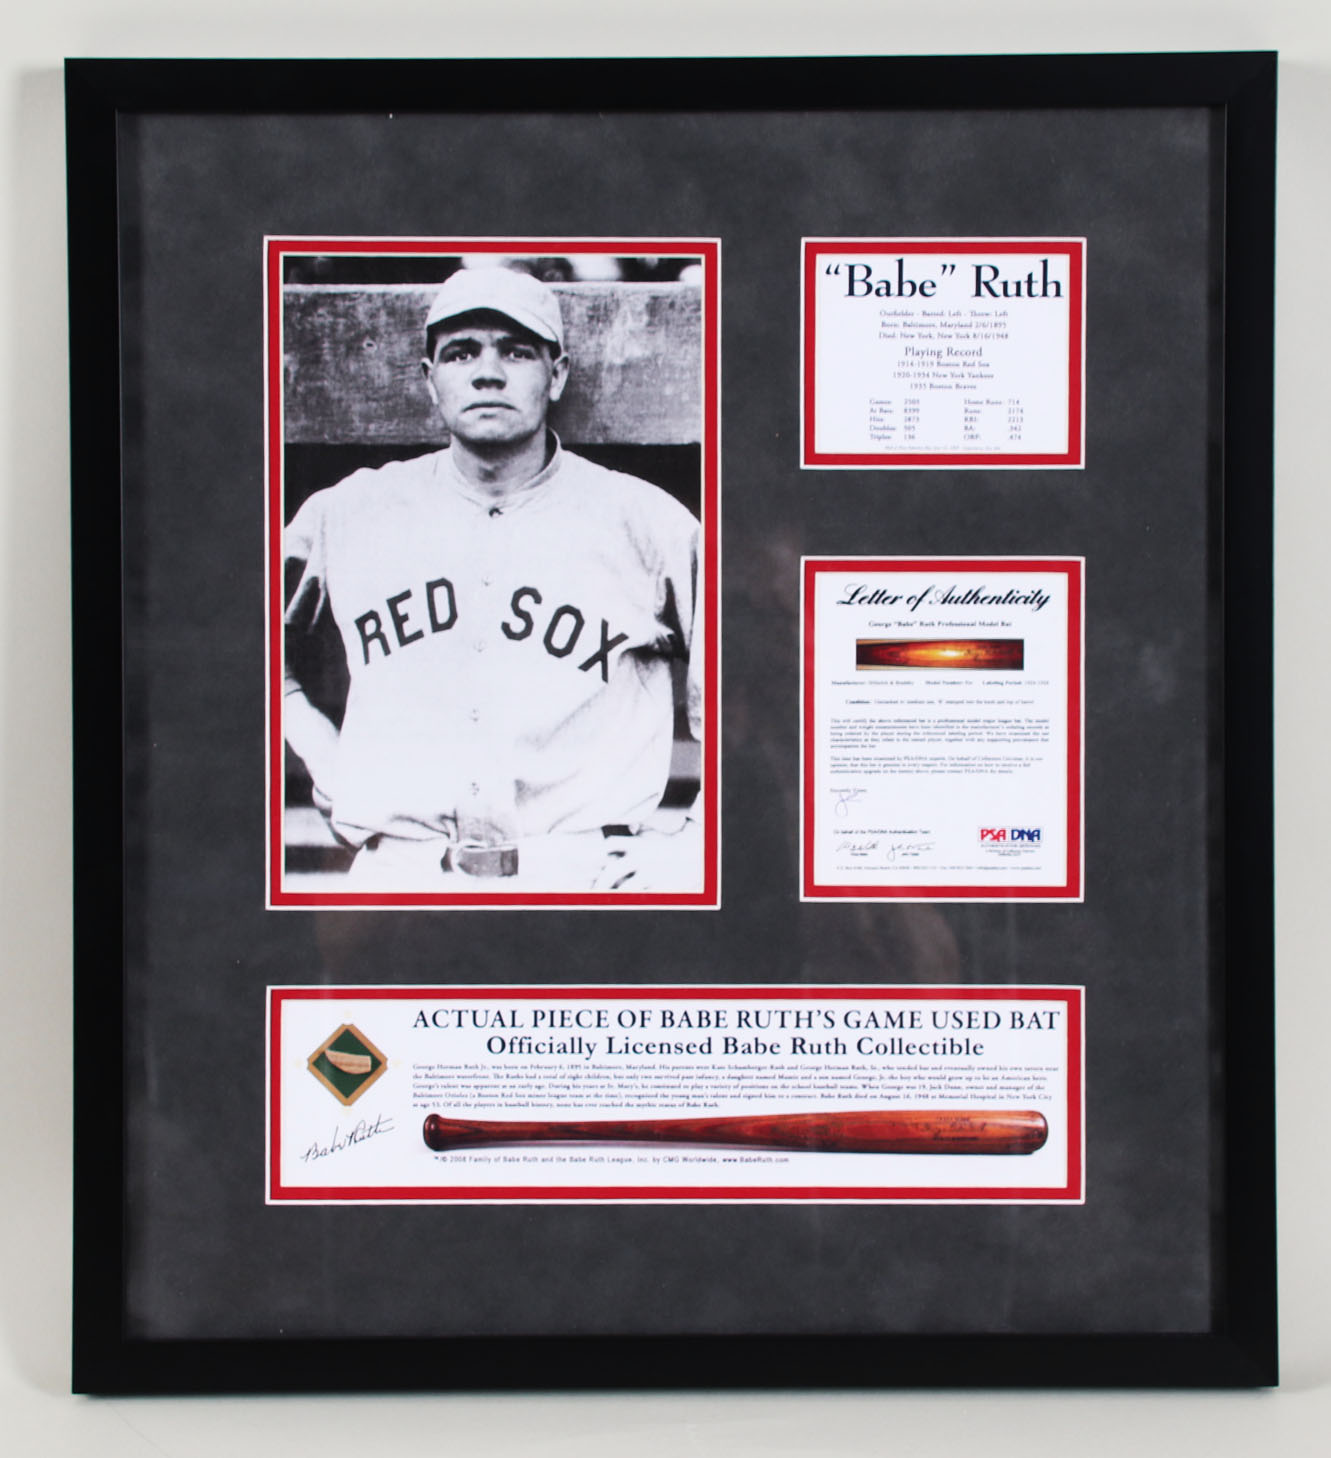 Babe Ruth Game-Used Baseball Bat Display Red Sox